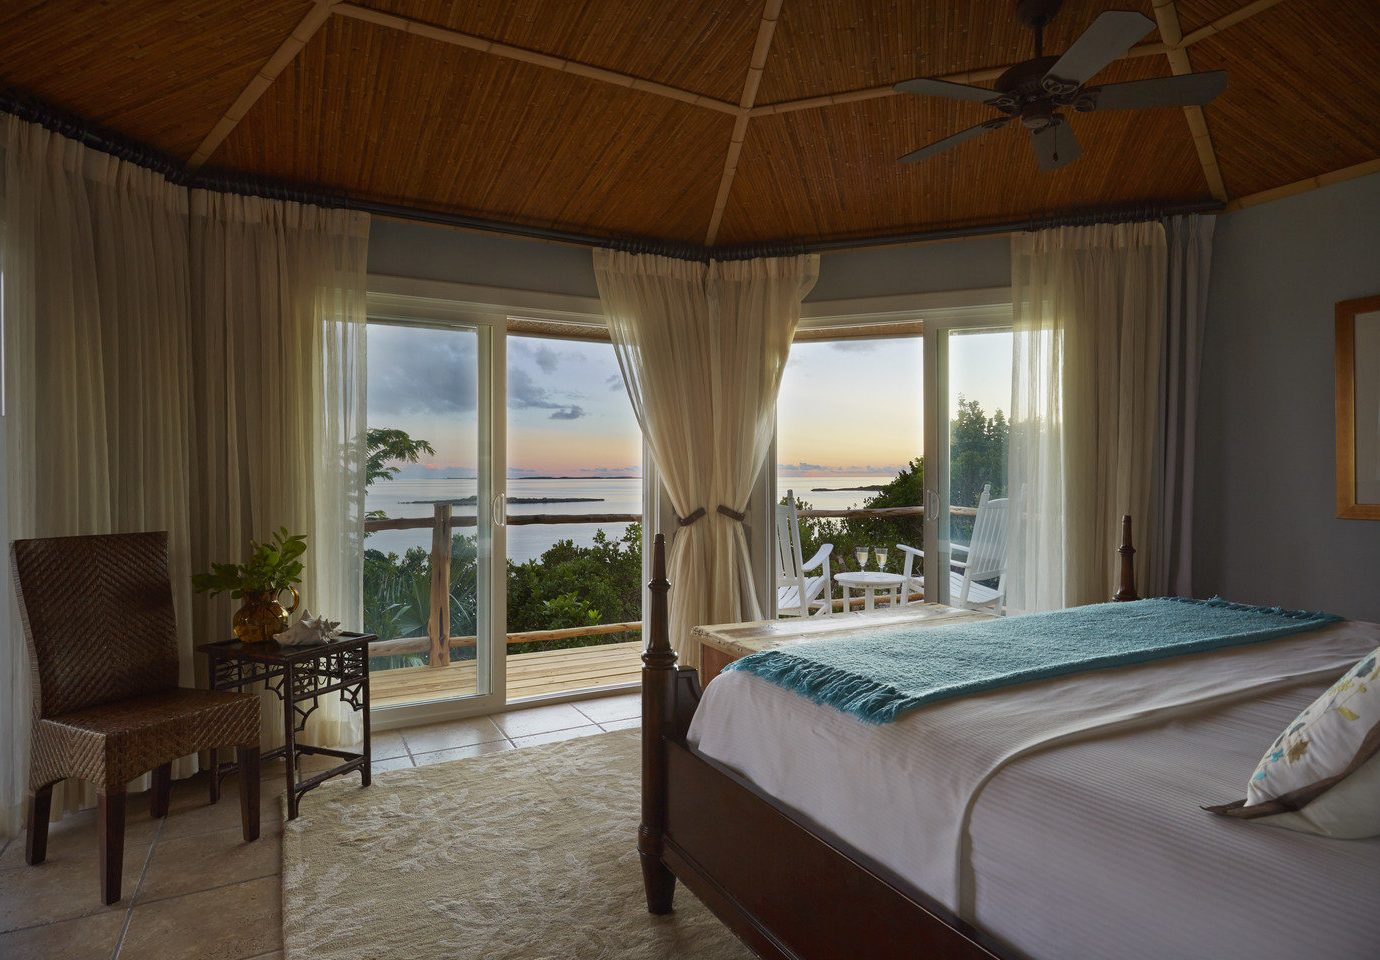 Bedroom with beach view at Fowl Cay Resort